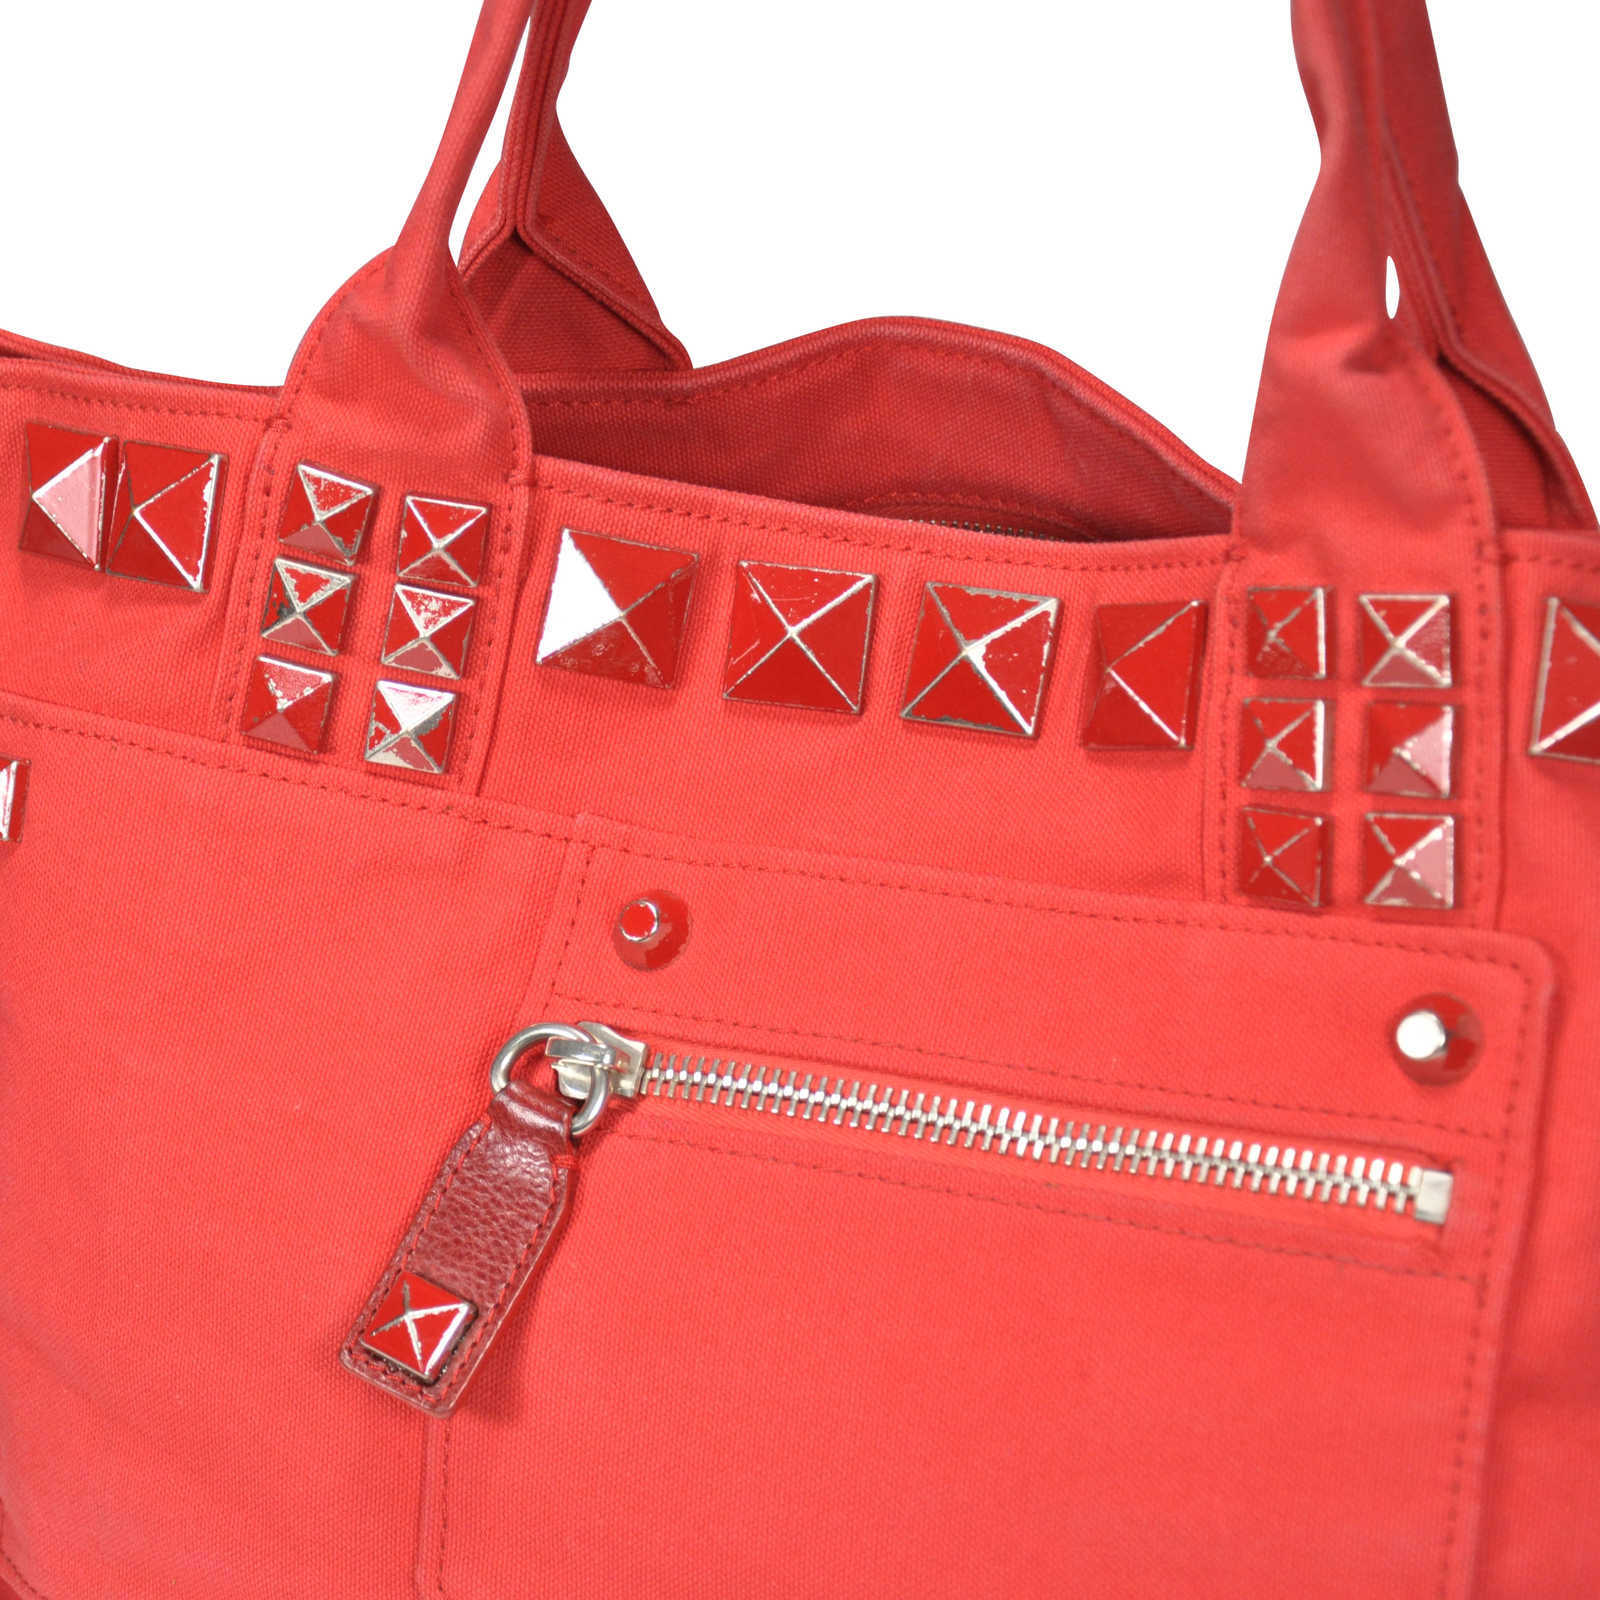 a915376eb ... Authentic Second Hand Marc Jacobs Sweet Punk Tote Bag (PSS-076-00004)  ...